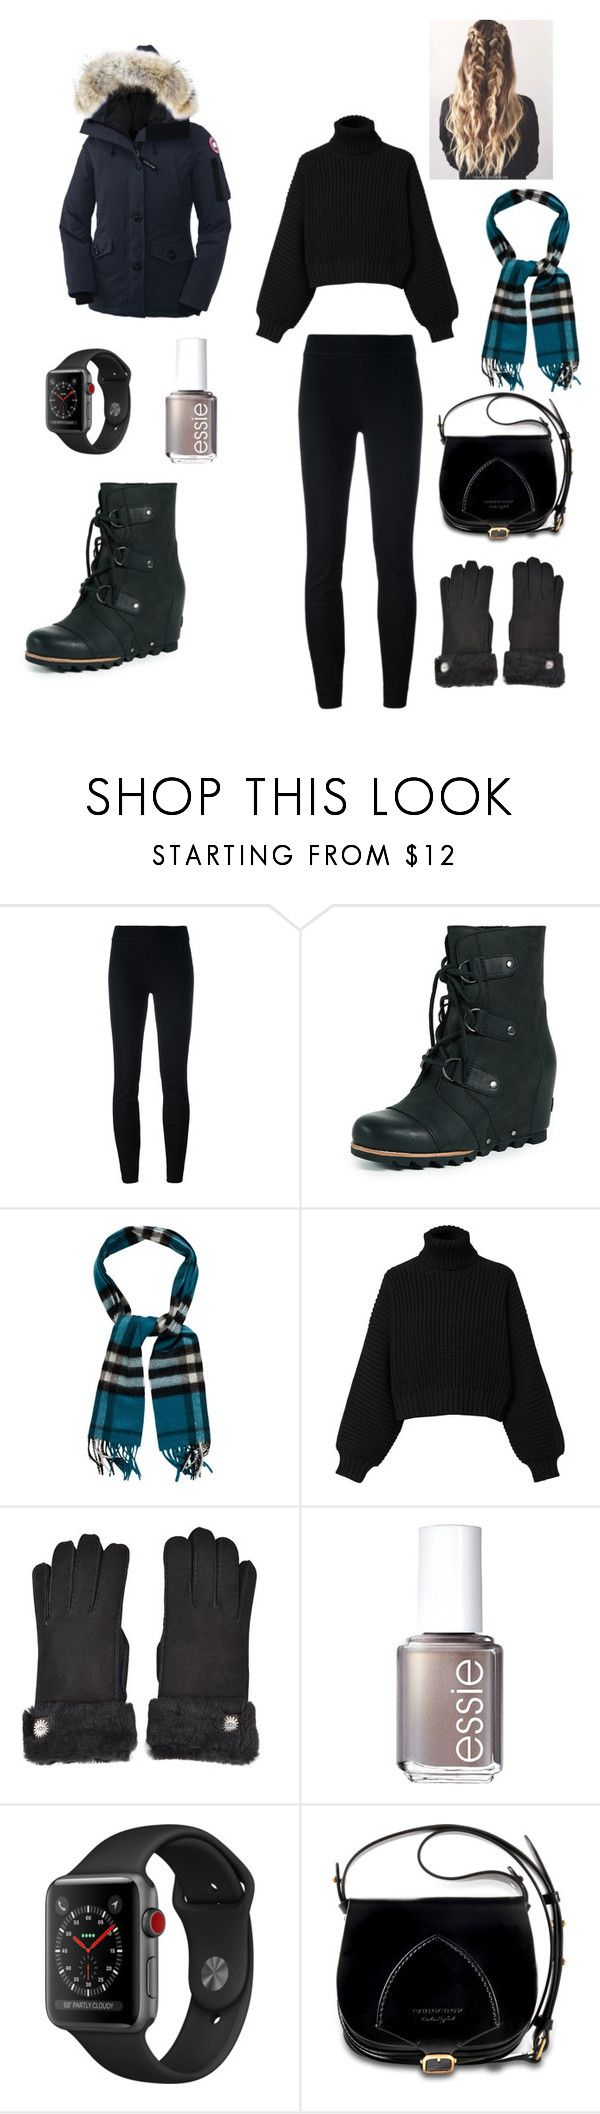 """""""winter wonderland"""" by lindacrea on Polyvore featuring Tory Burch, SOREL, Burberry, Diesel, UGG, Essie and Canada Goose"""